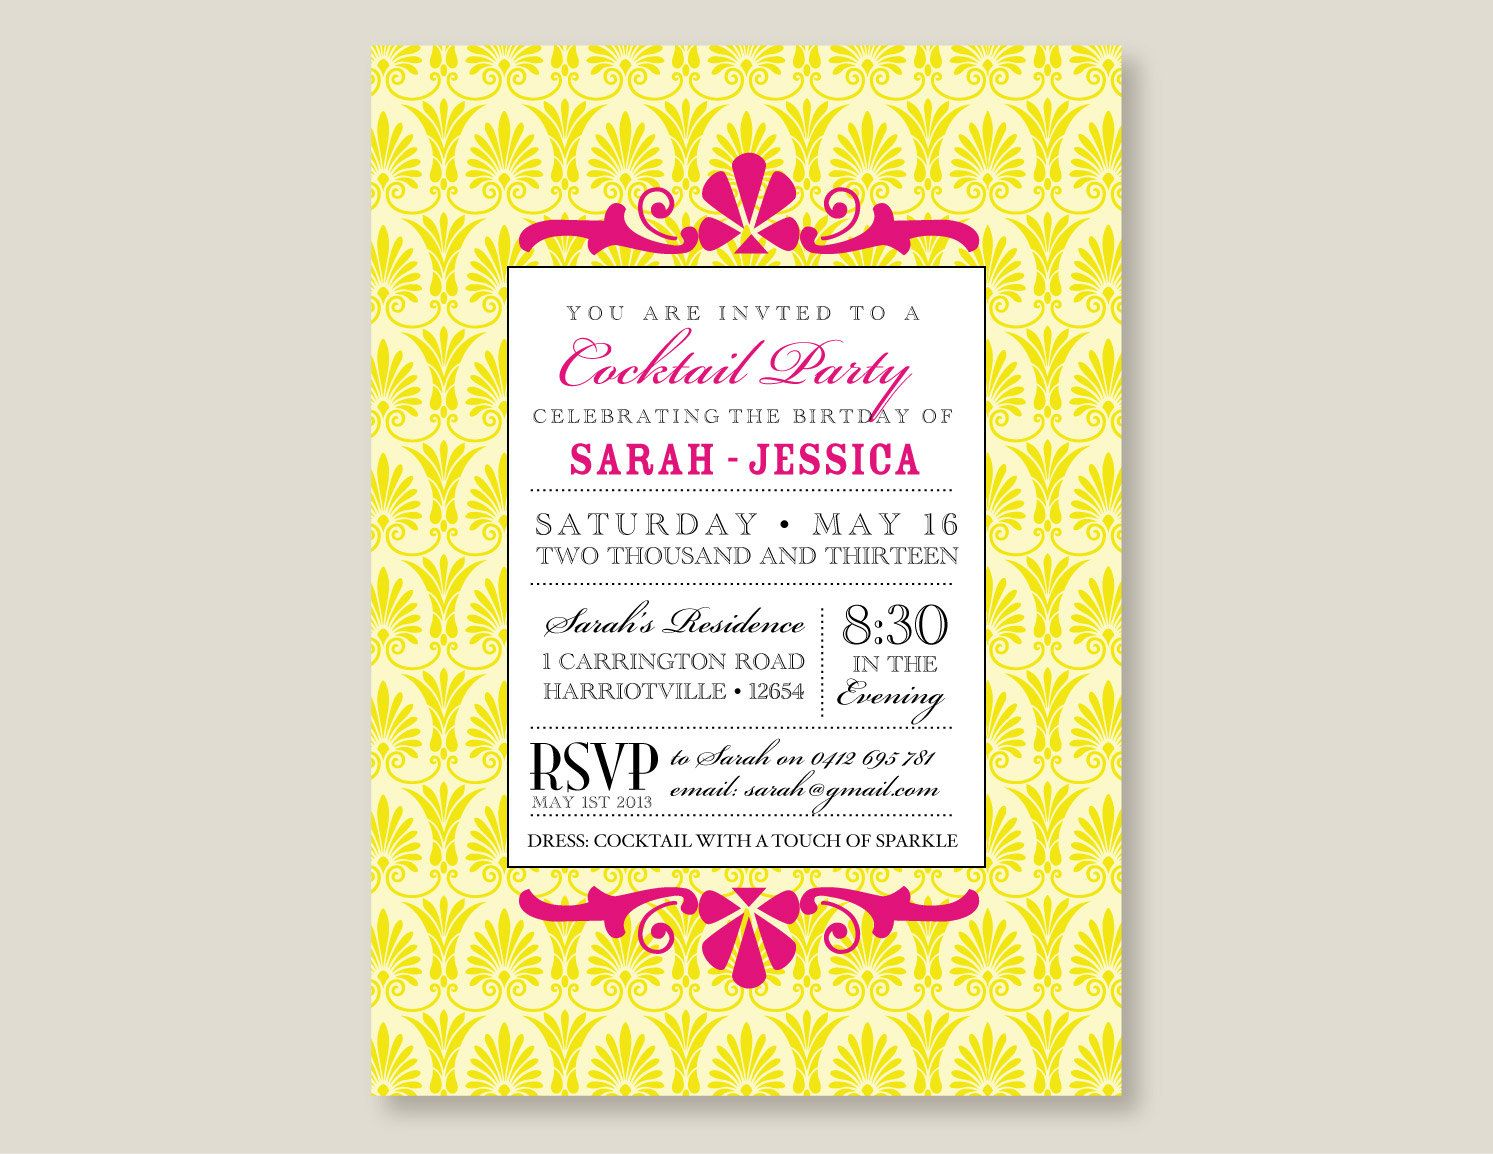 diy cocktail party invitation customize and print at home 17 00